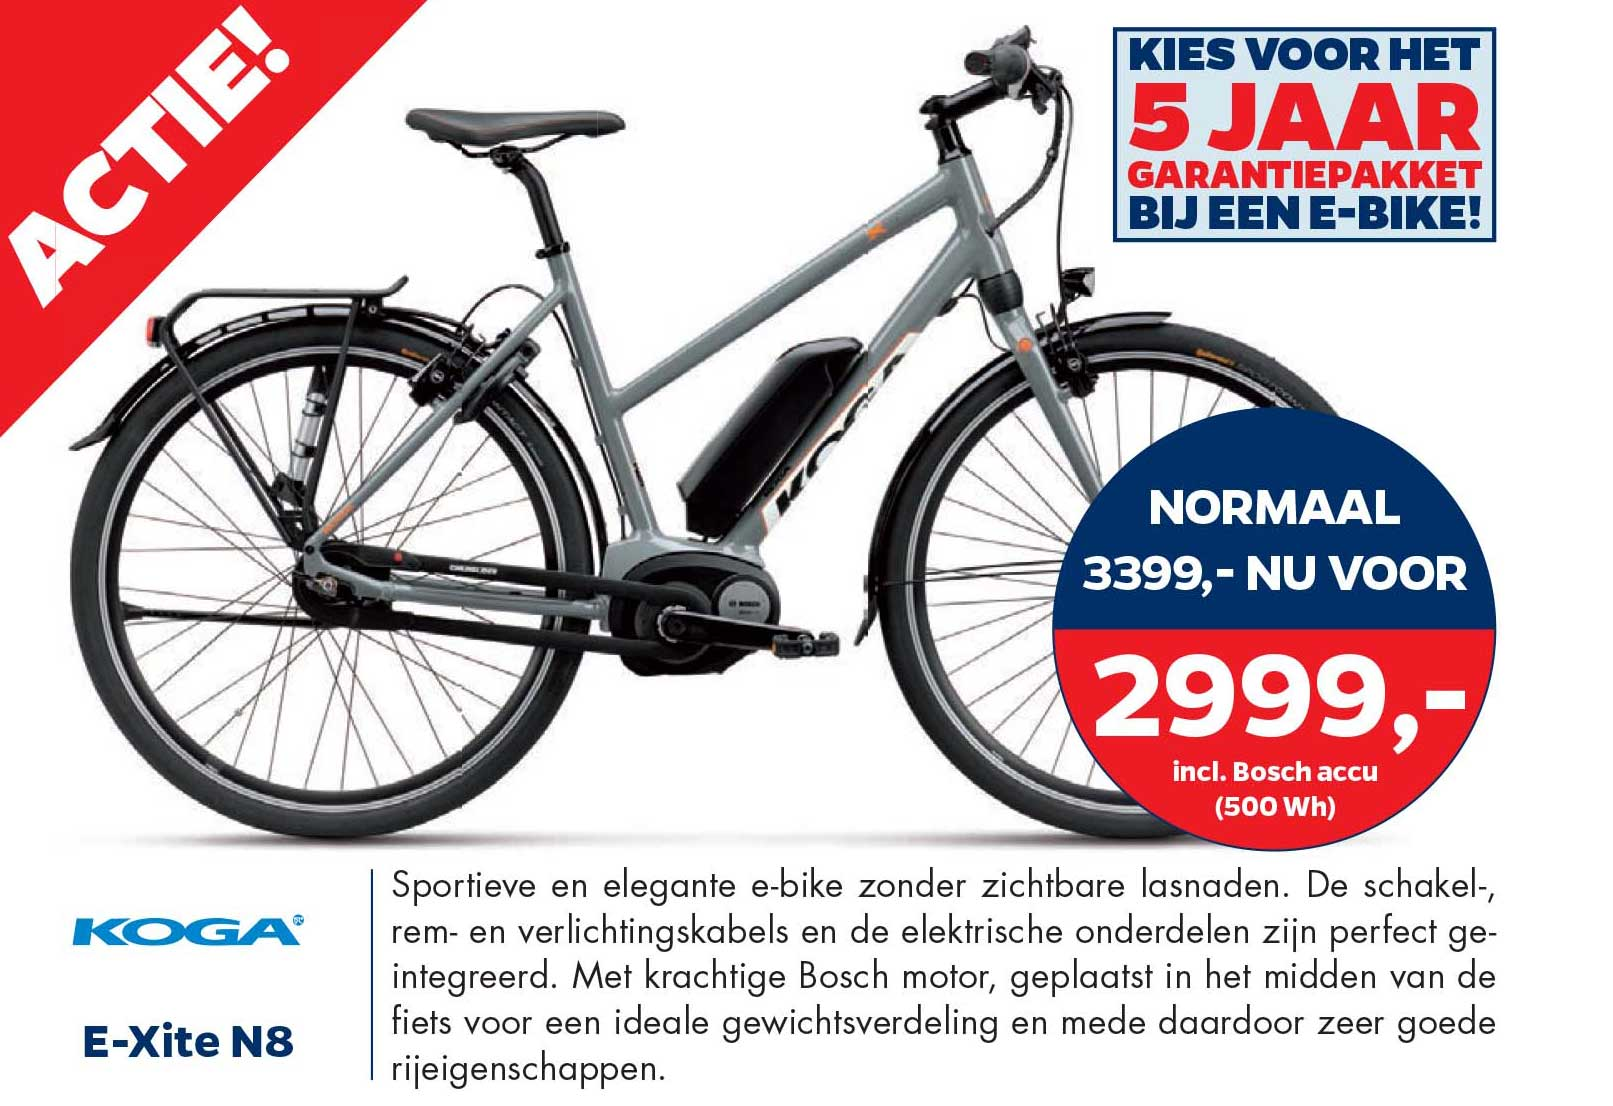 Bike Totaal Koga E-xite N8 E-bike